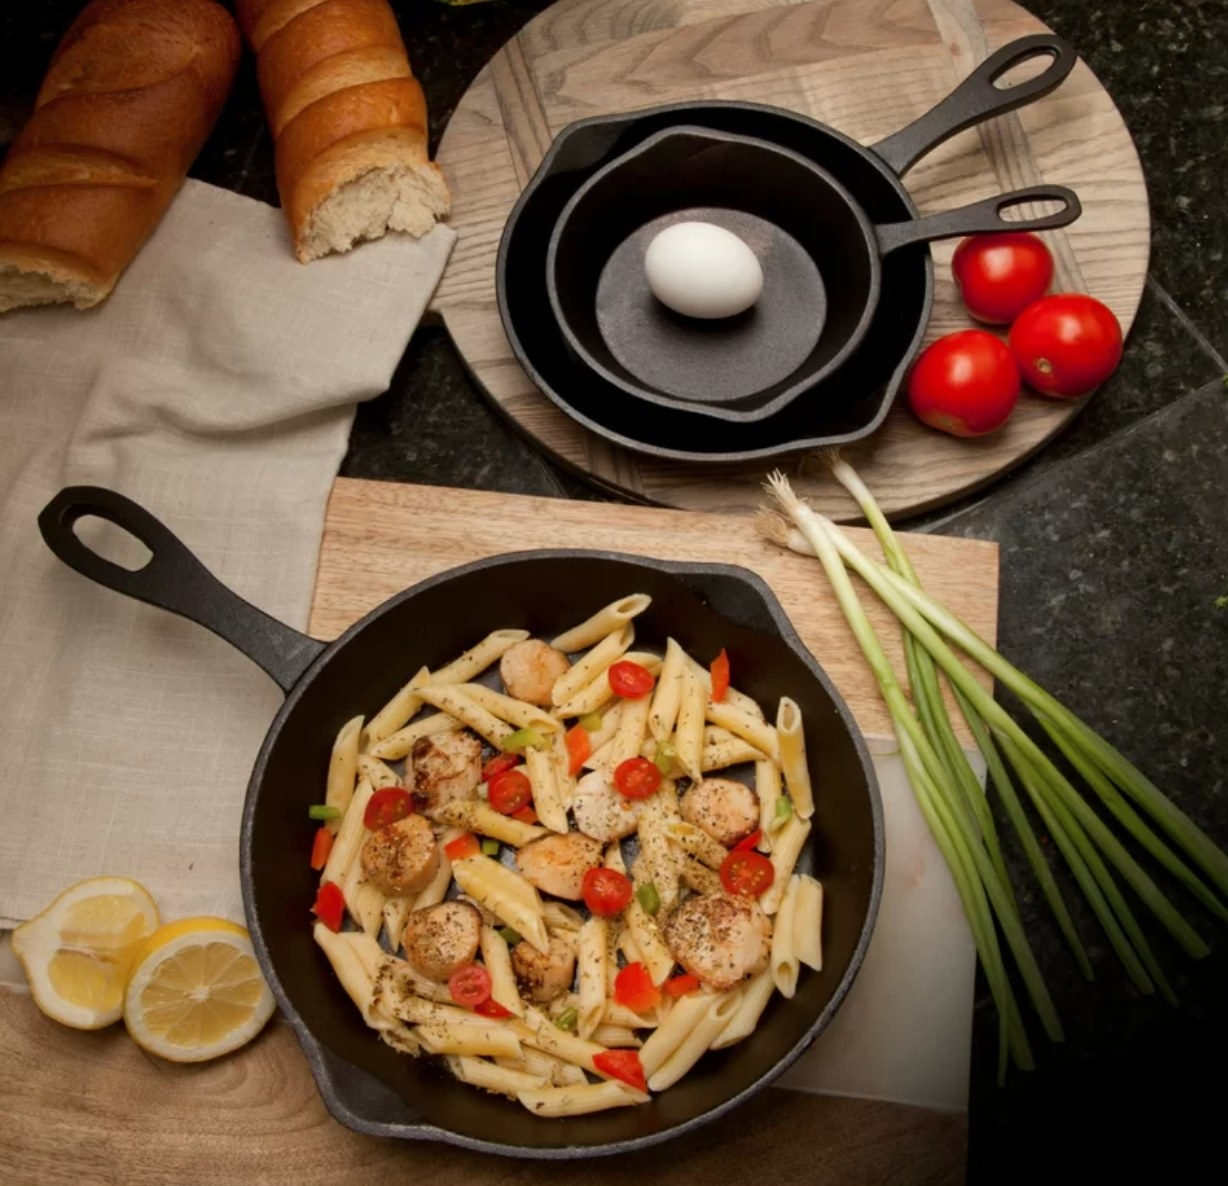 The three skillets being used for a pasta dish